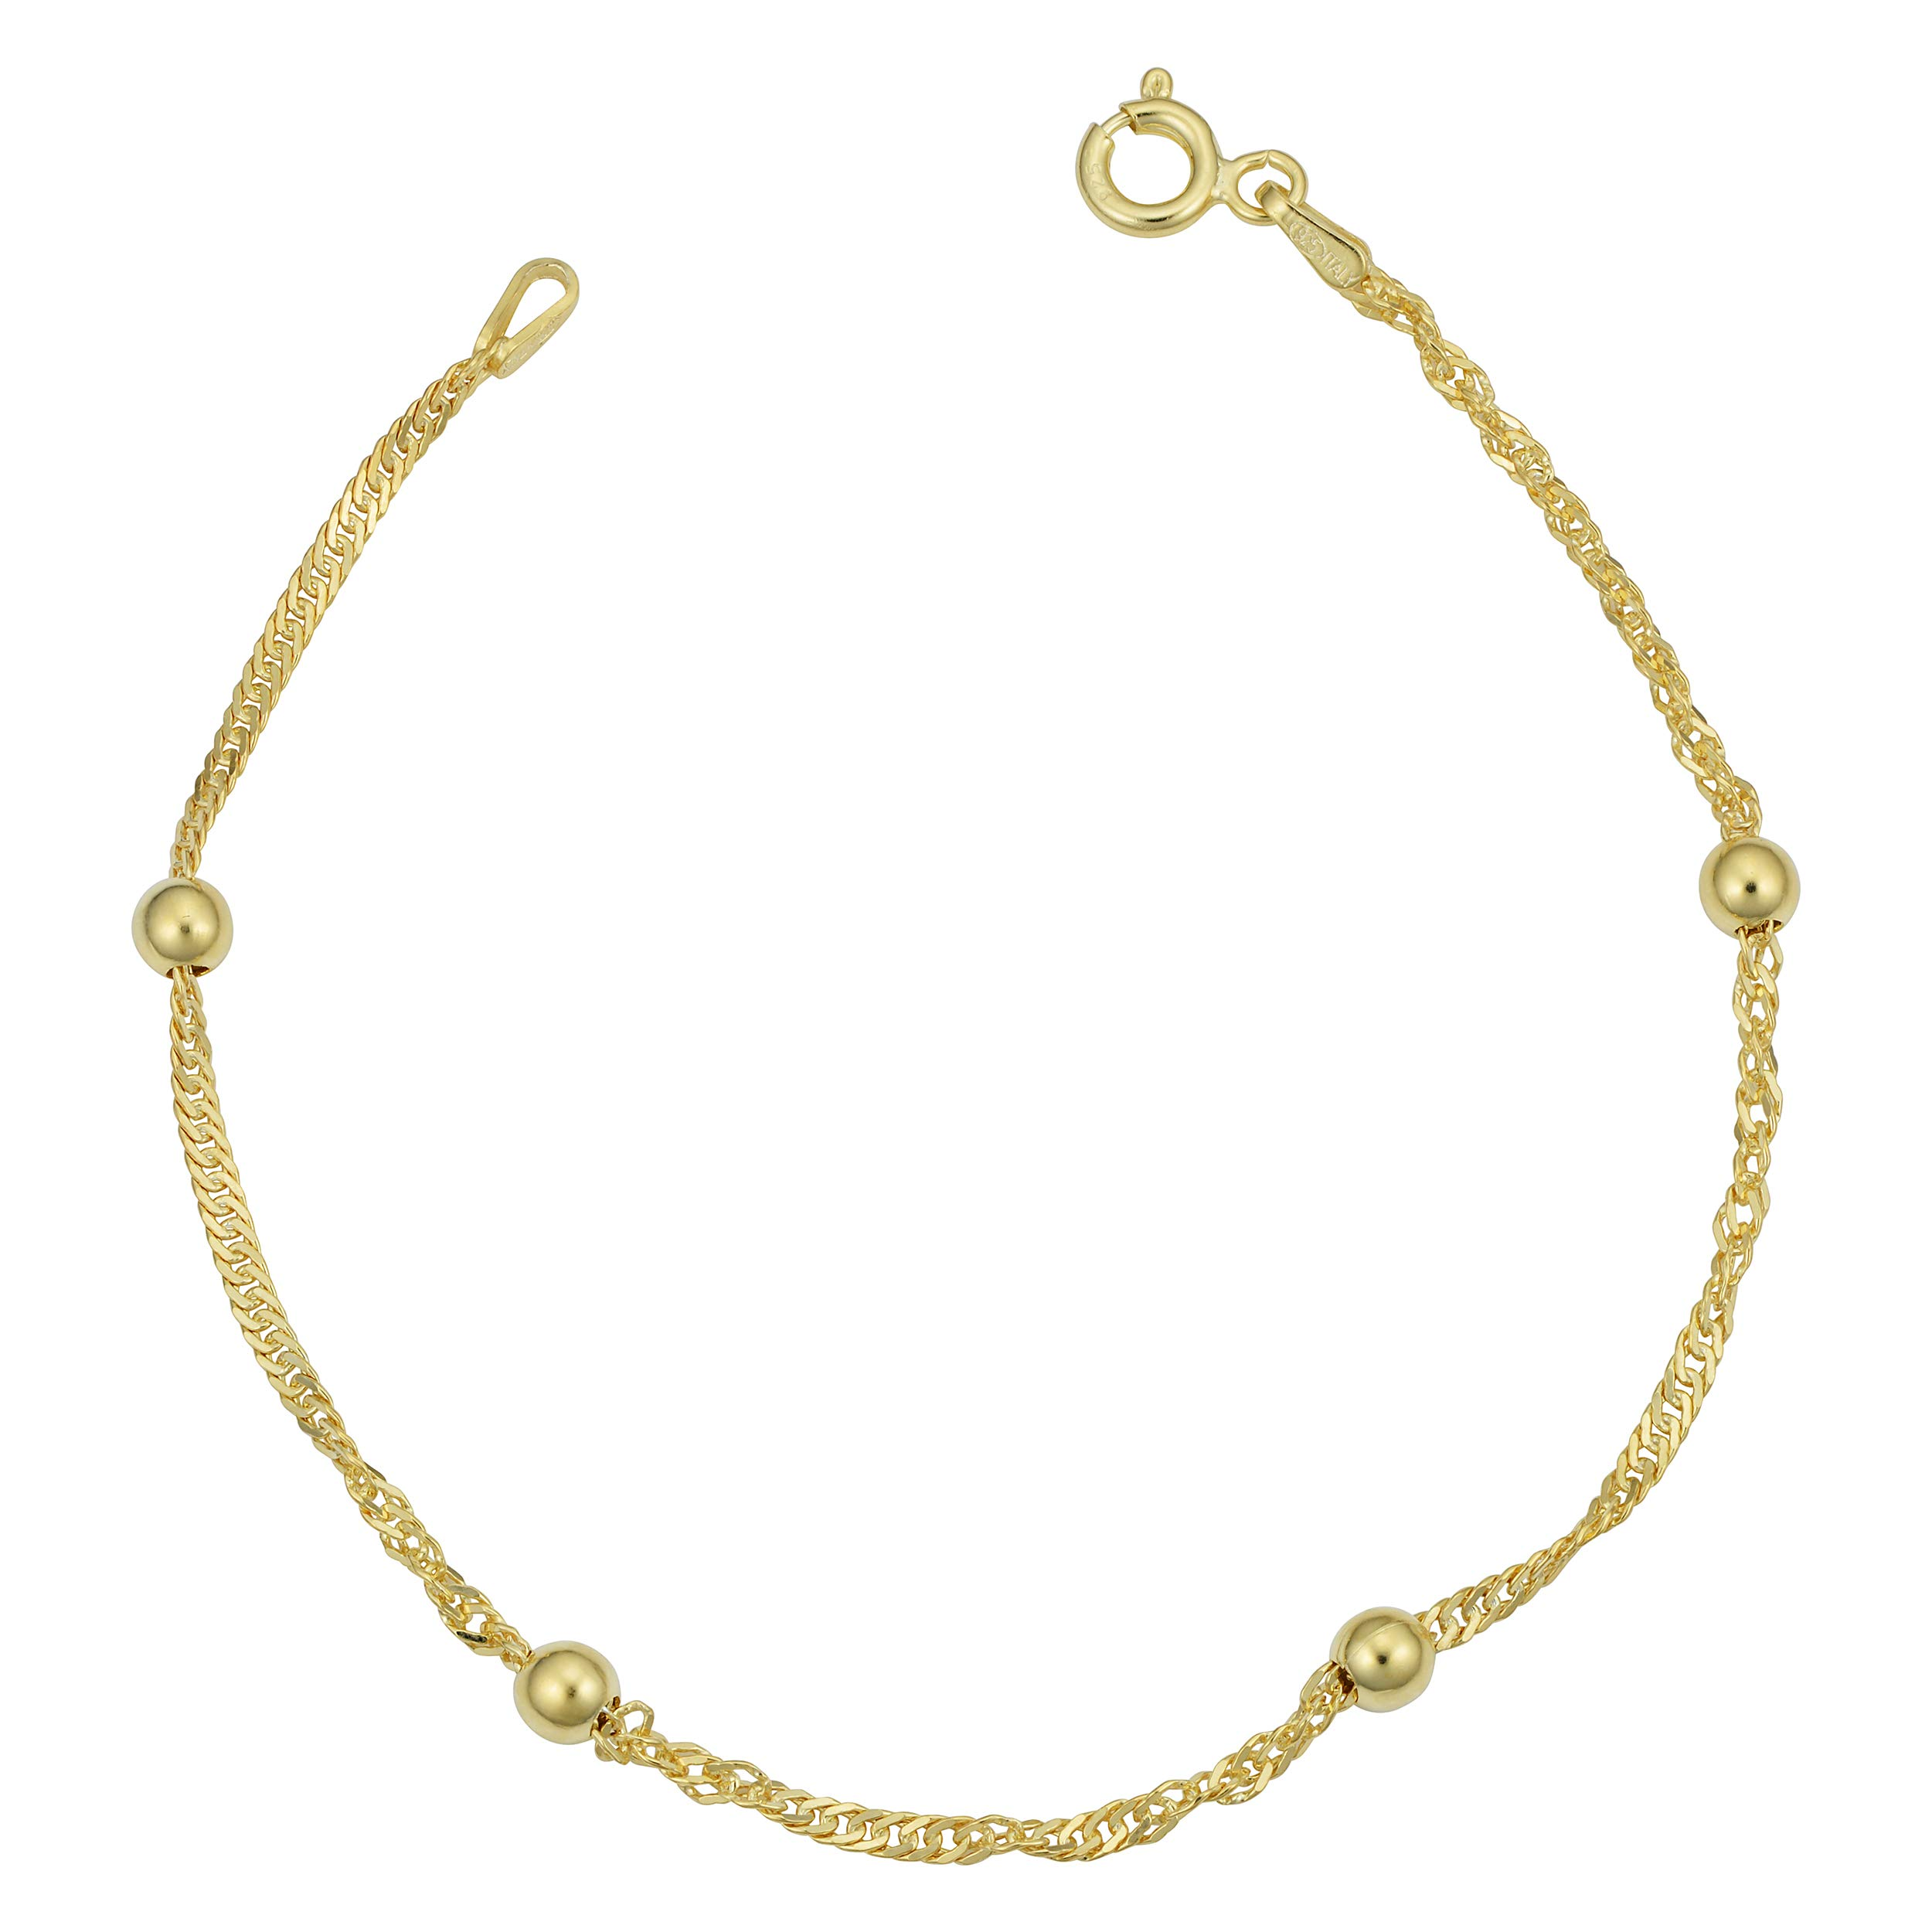 Kooljewelry Yellow Gold Over Sterling Silver 1.5mm Singapore Bead Station Anklet (10 inch)